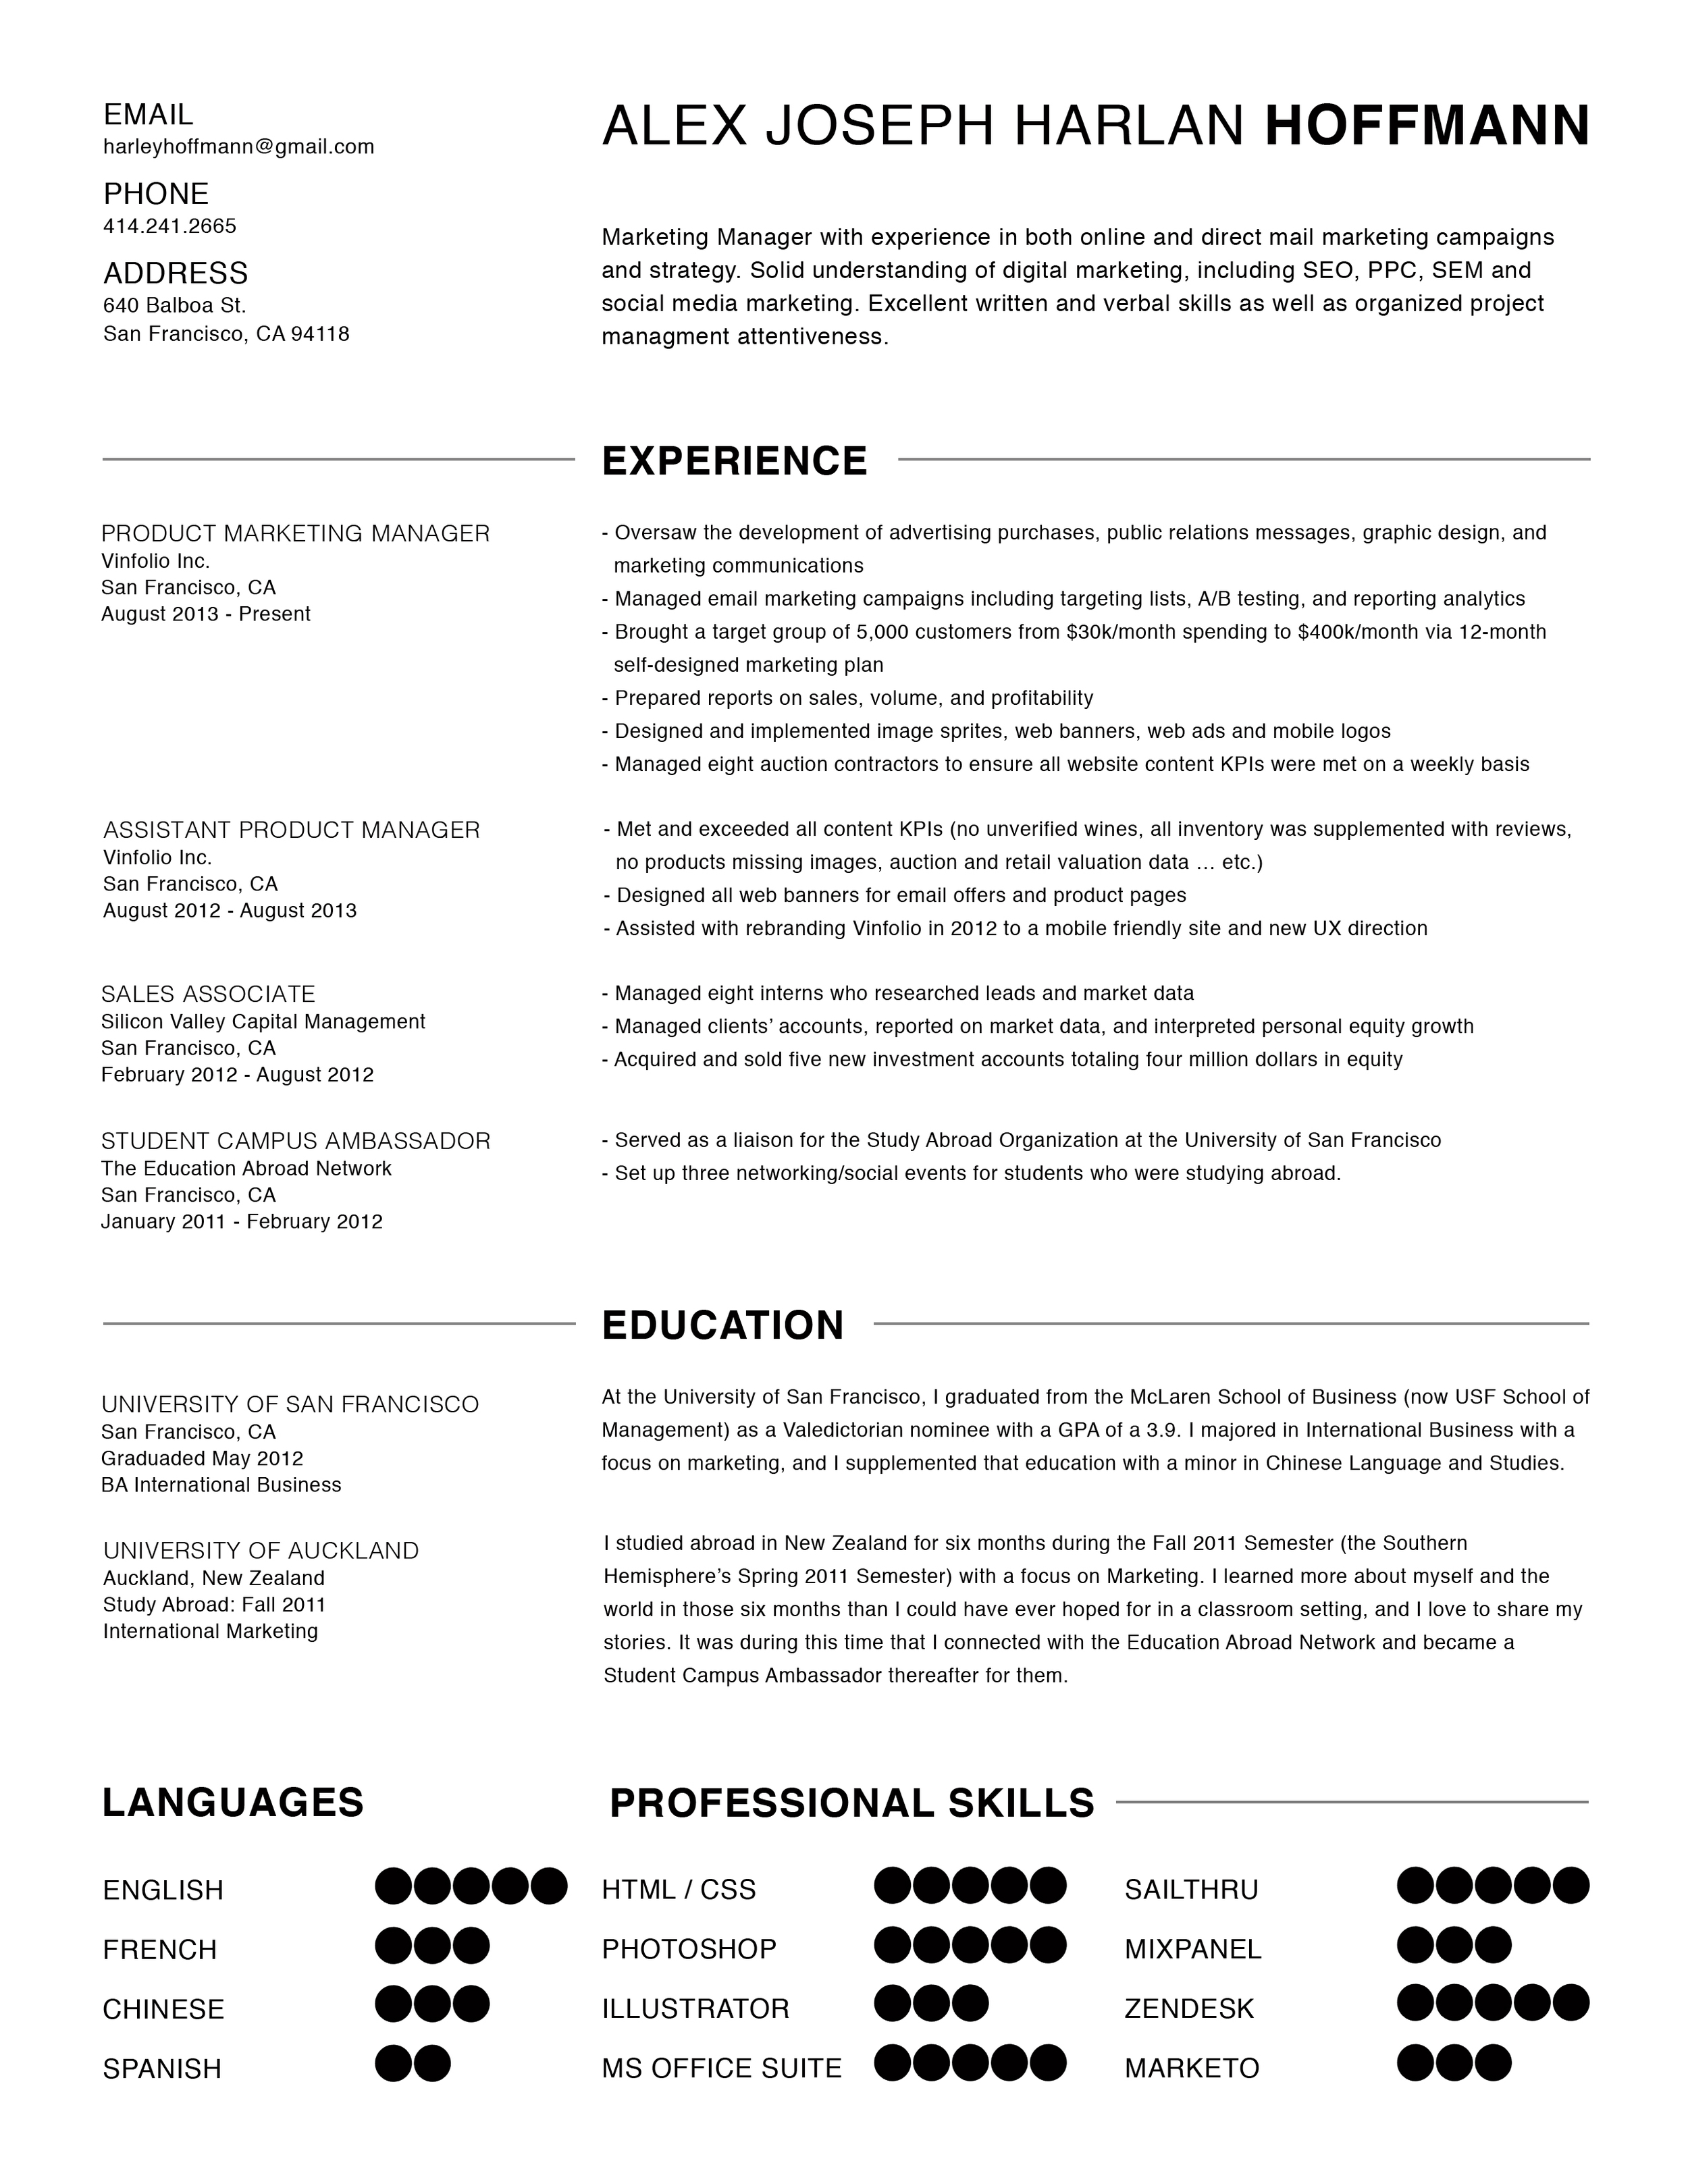 fire safety engineer sample resume construction manager sample 2 years of ajhhoffmannresumebw cover letter for resume for software engineer 2 years of experiencehtml fire safety engineer sample resume